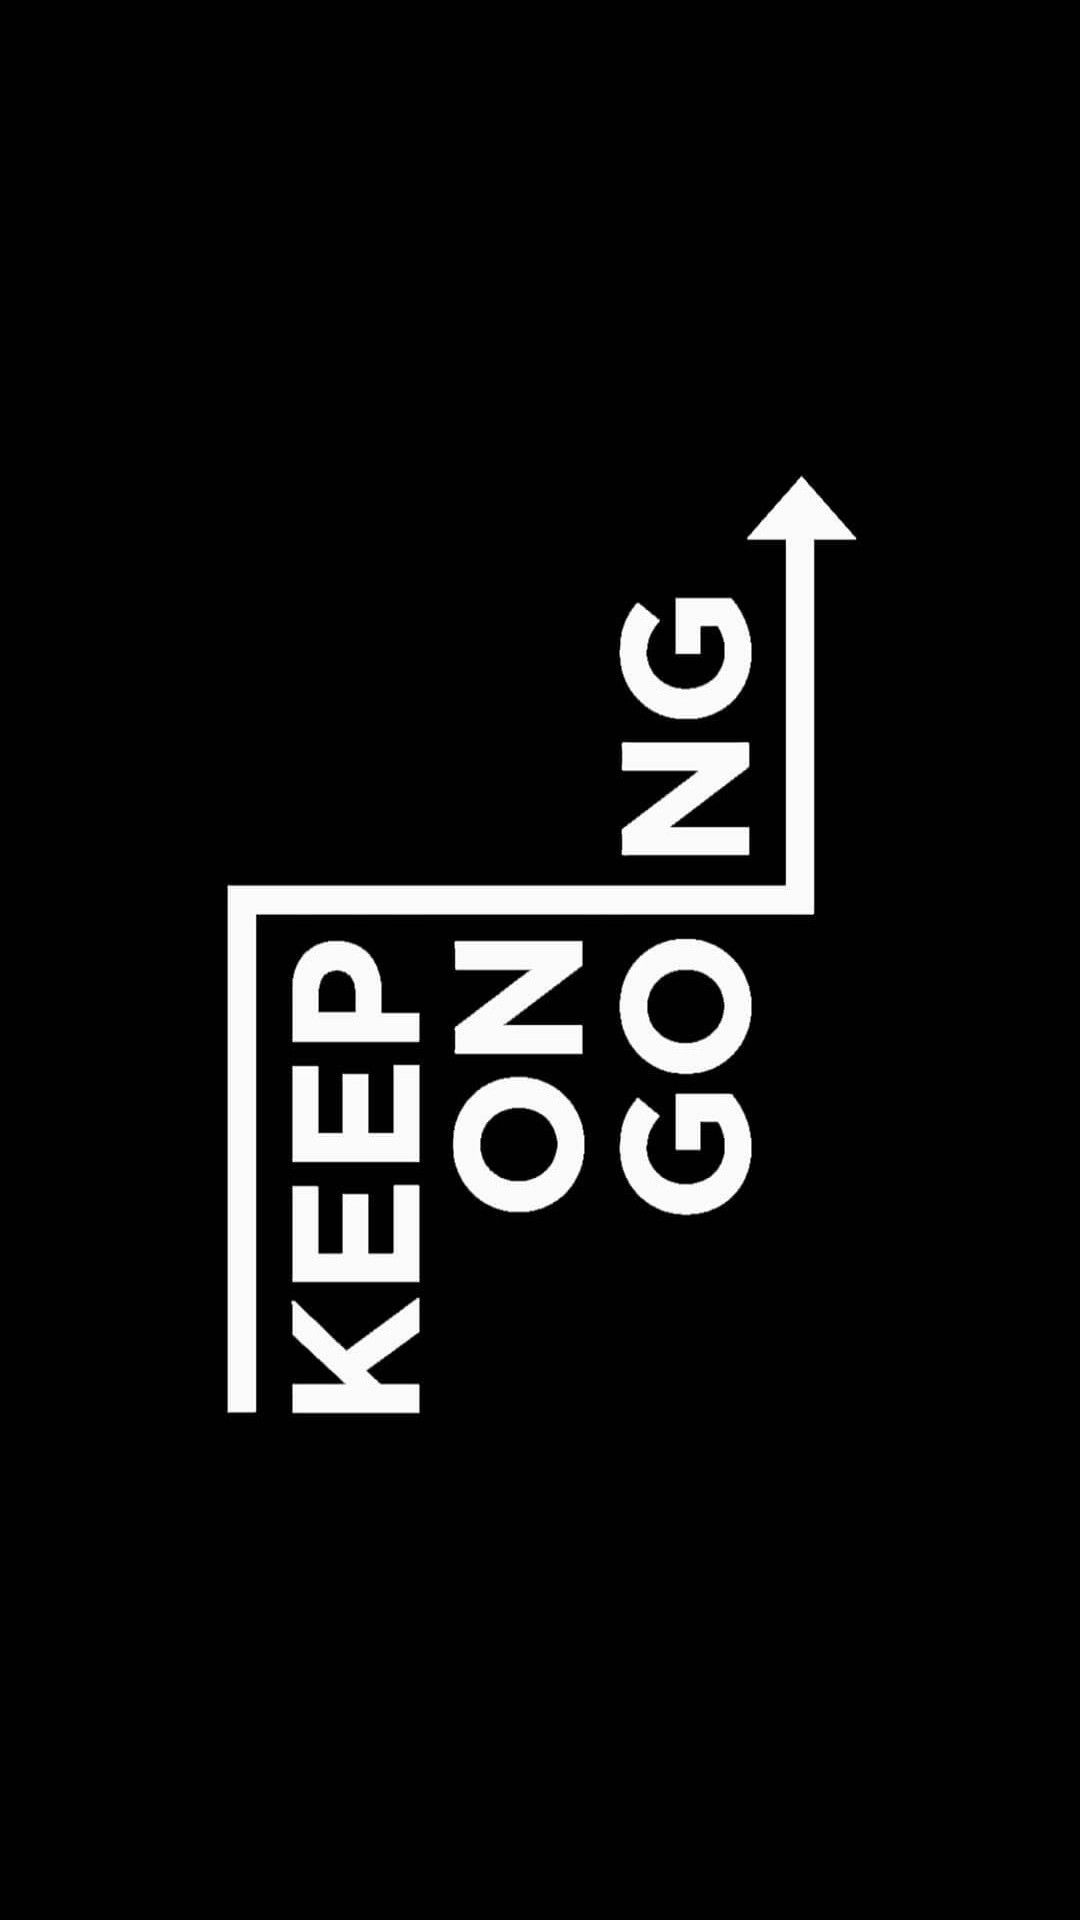 Keep On Going Motivational Quotes Wallpaper Inspirational Quotes Background Design Quotes